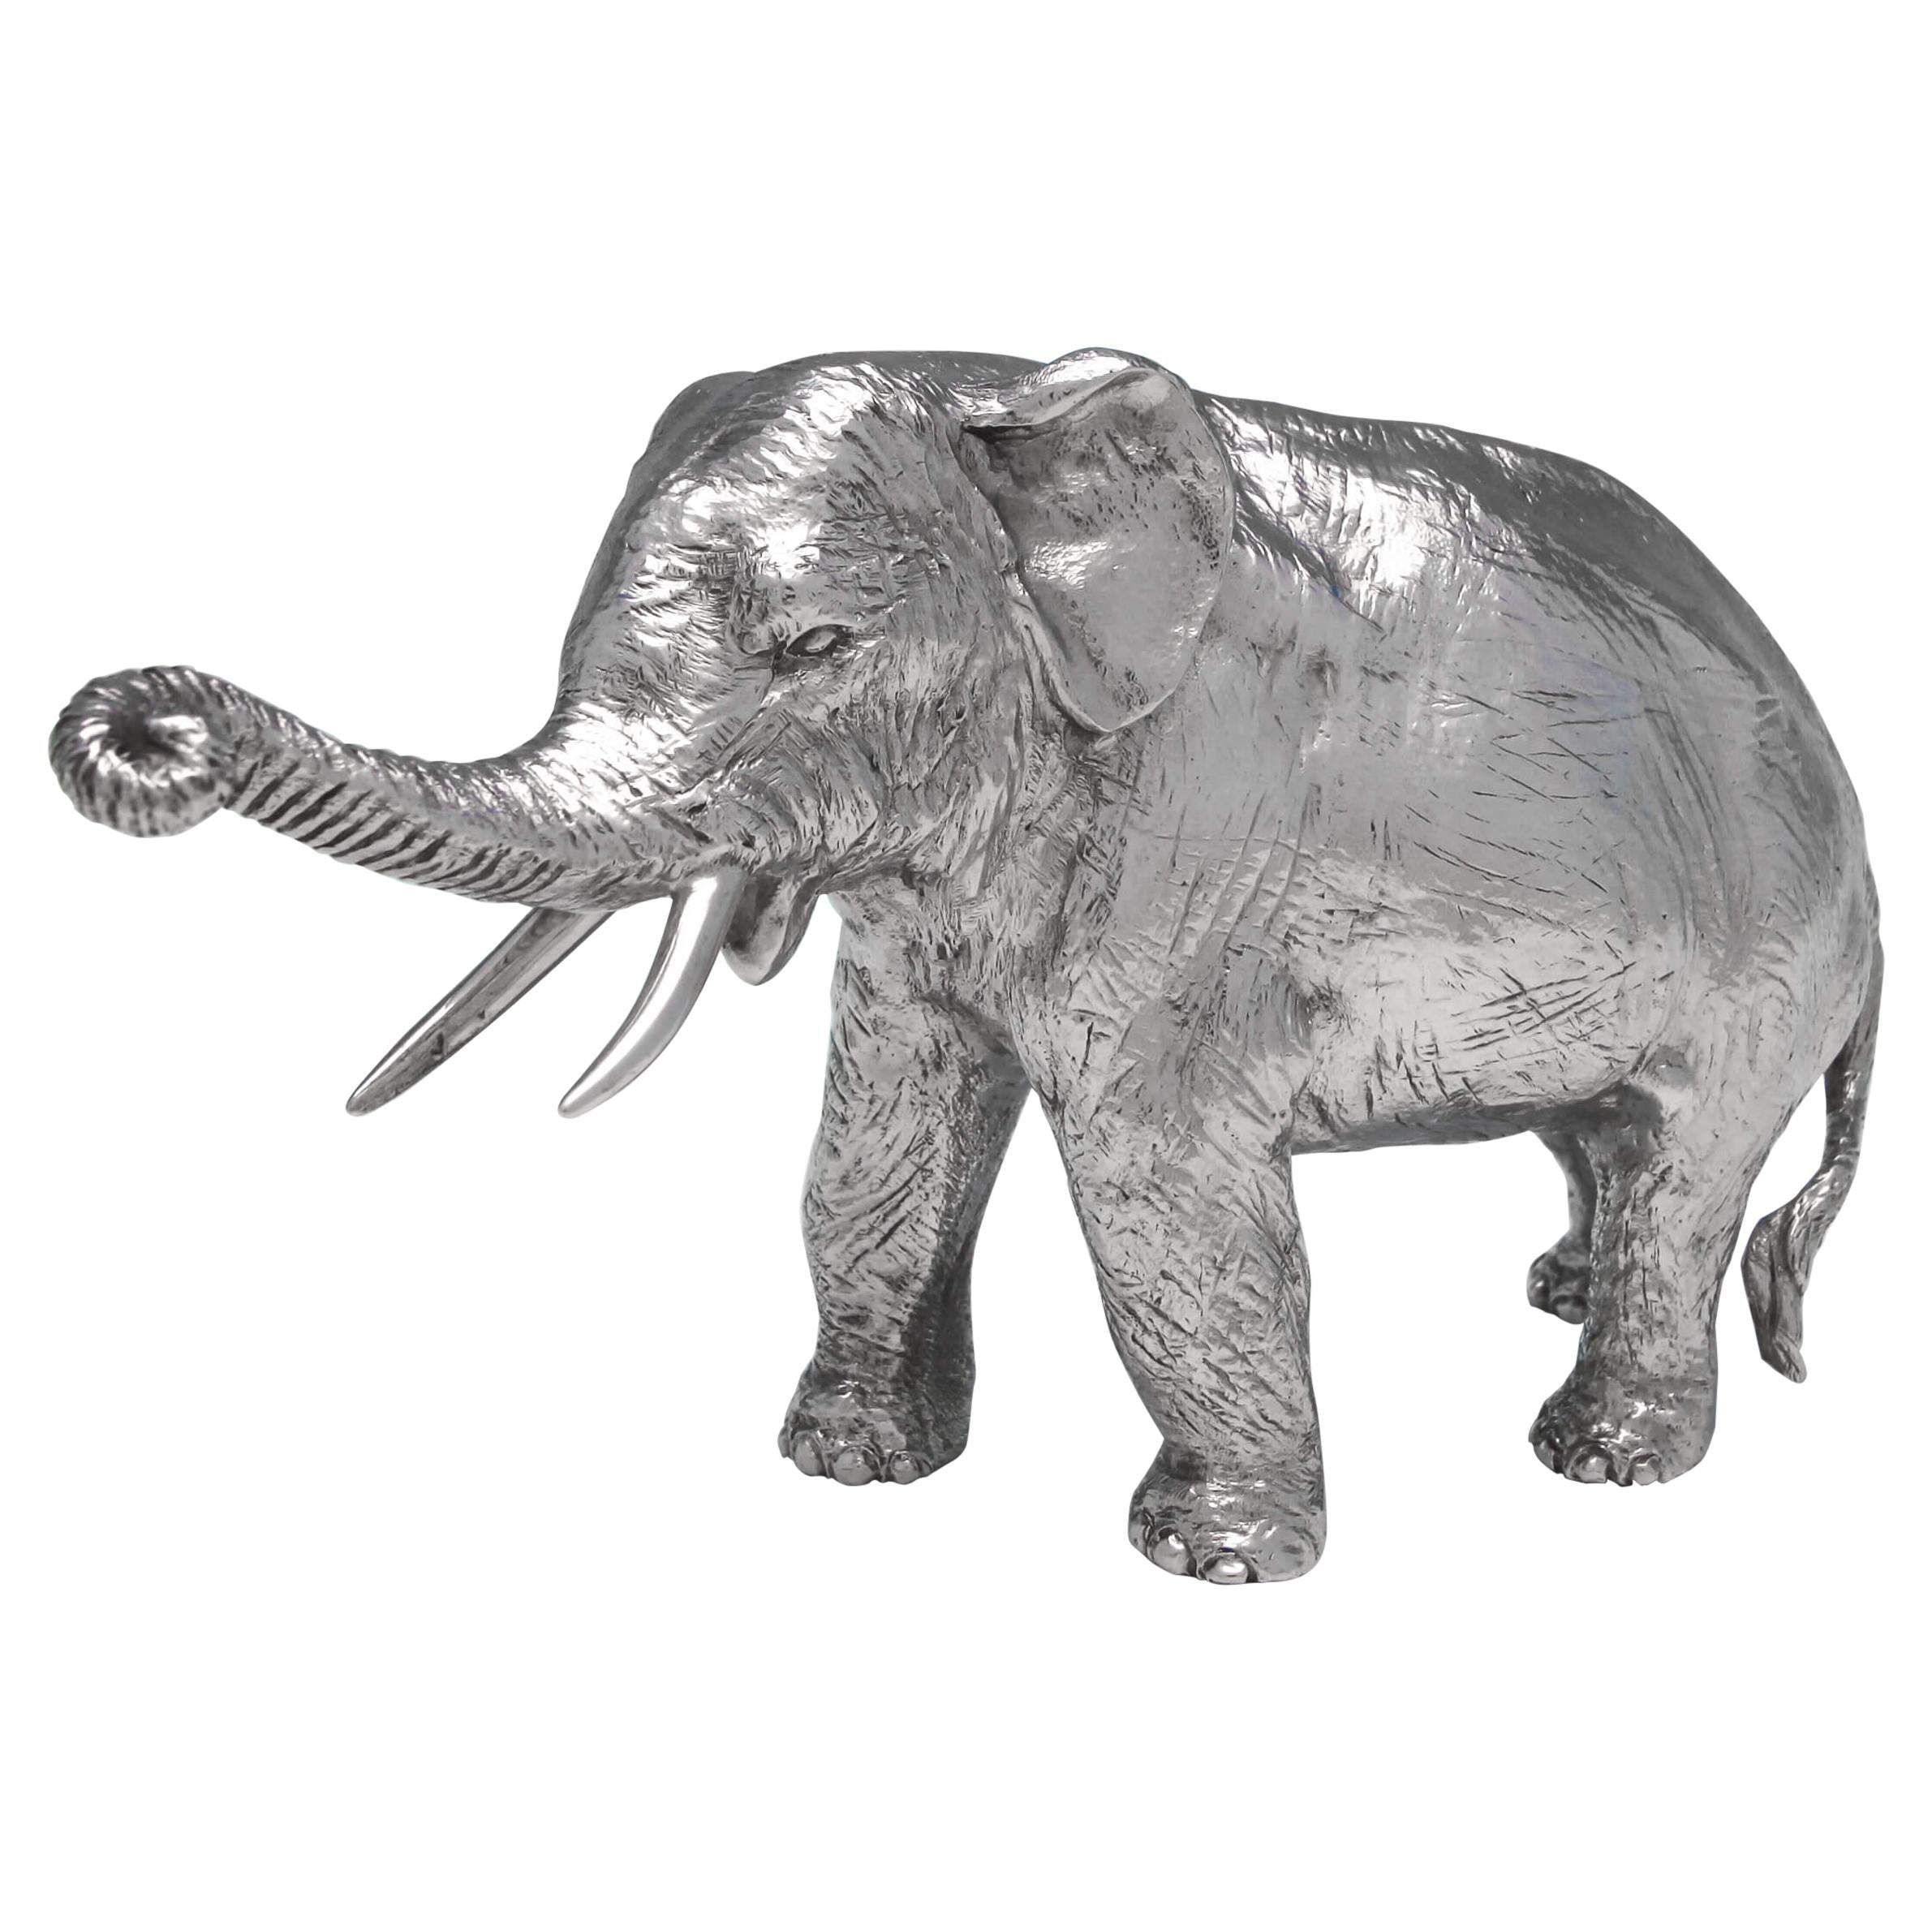 English Realistically Cast and Heavy Sterling Silver Elephant Model Made in 1973